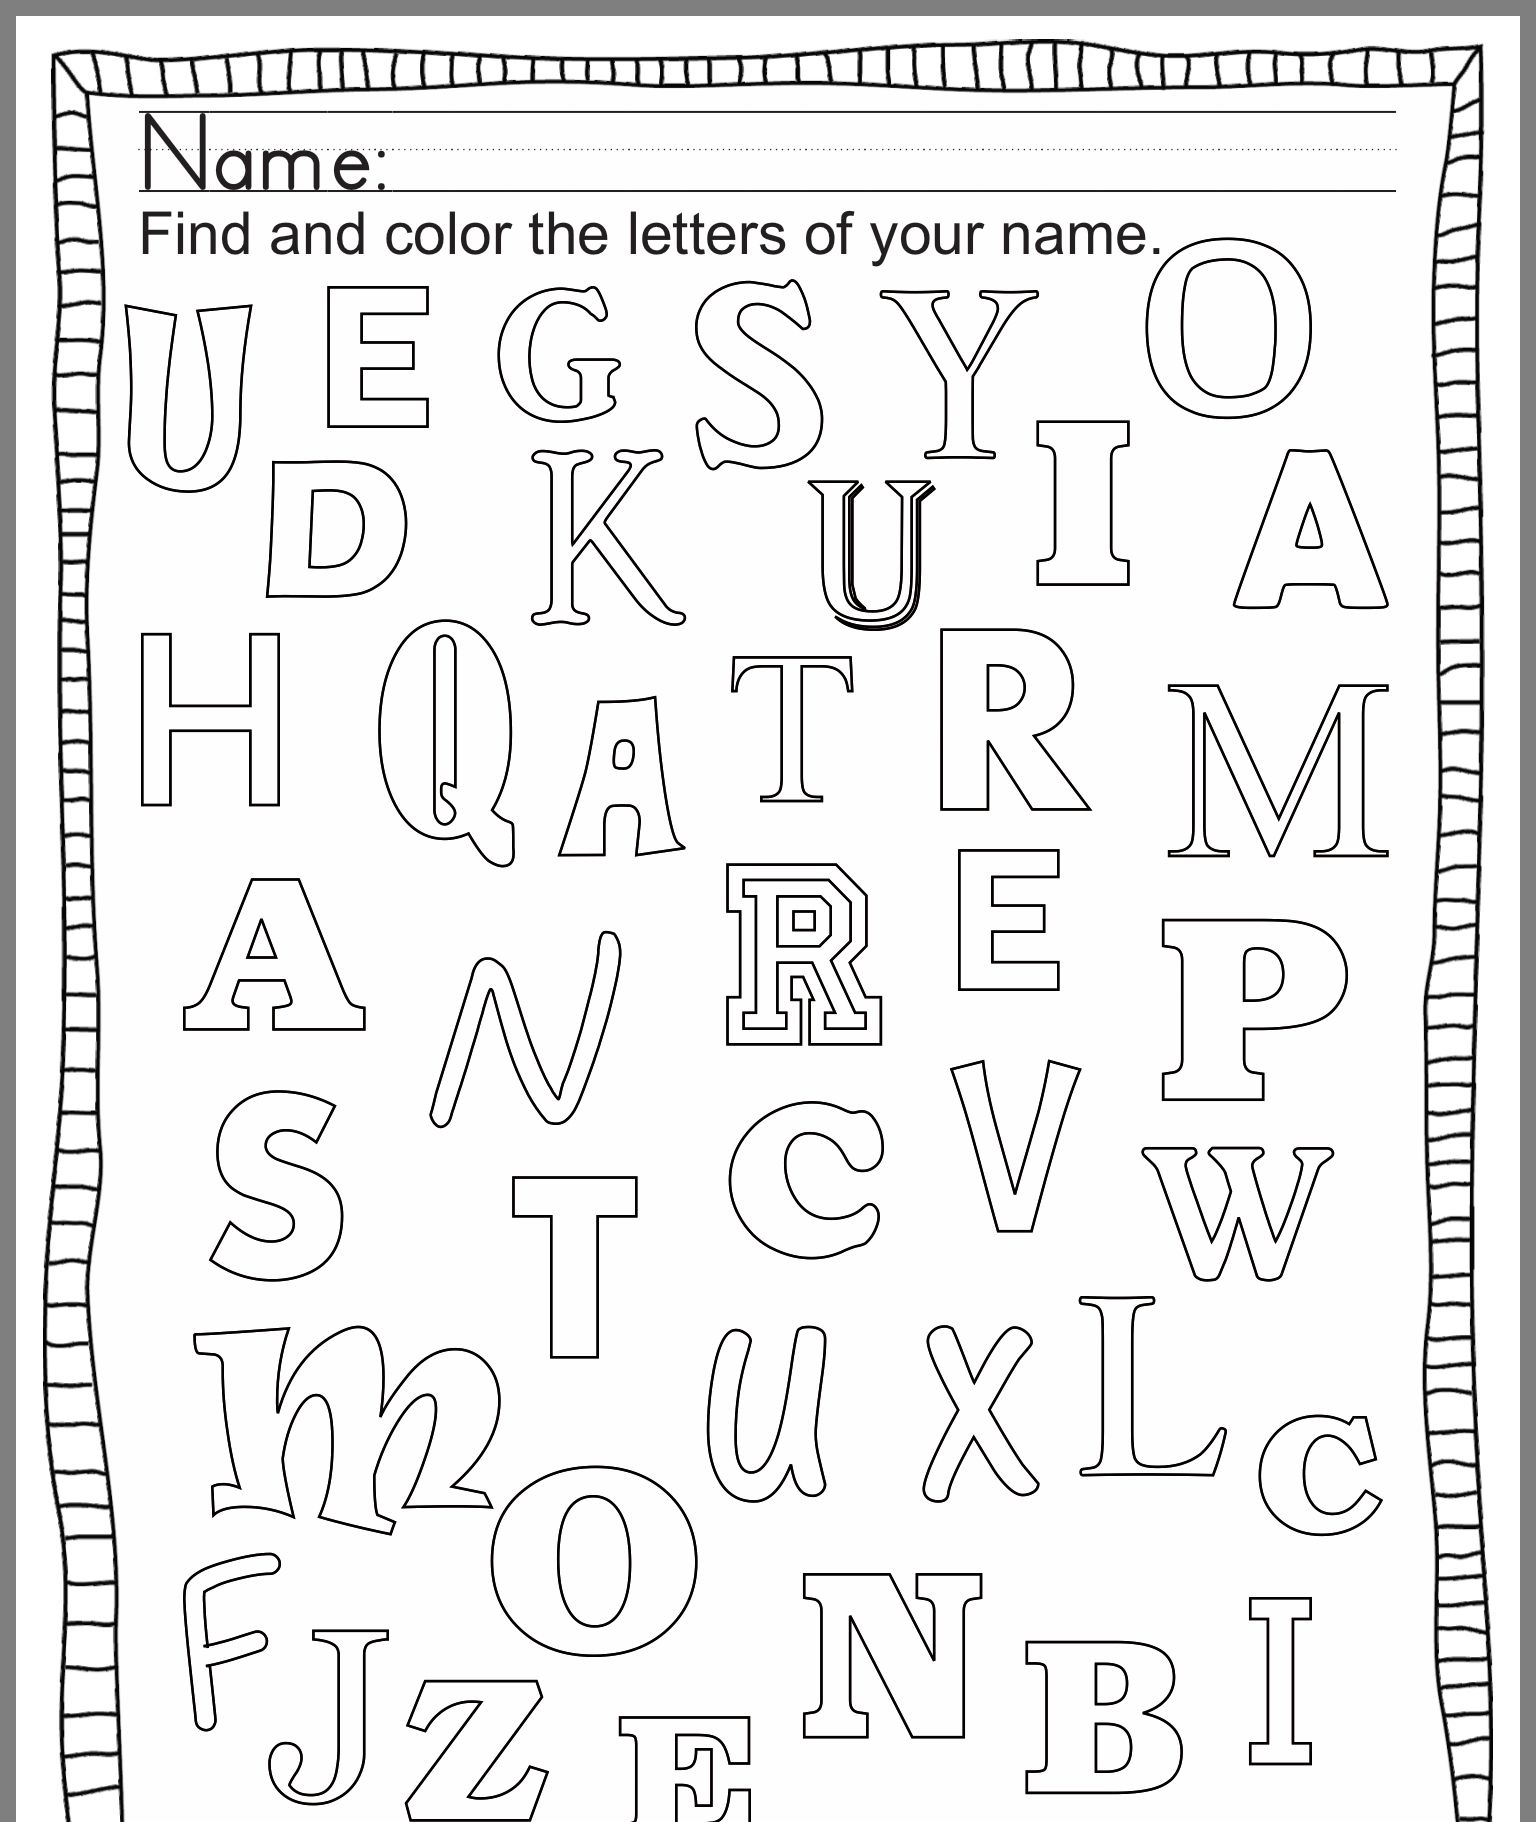 Lettering Alphabet Image By Rachael Grabek On Preschool